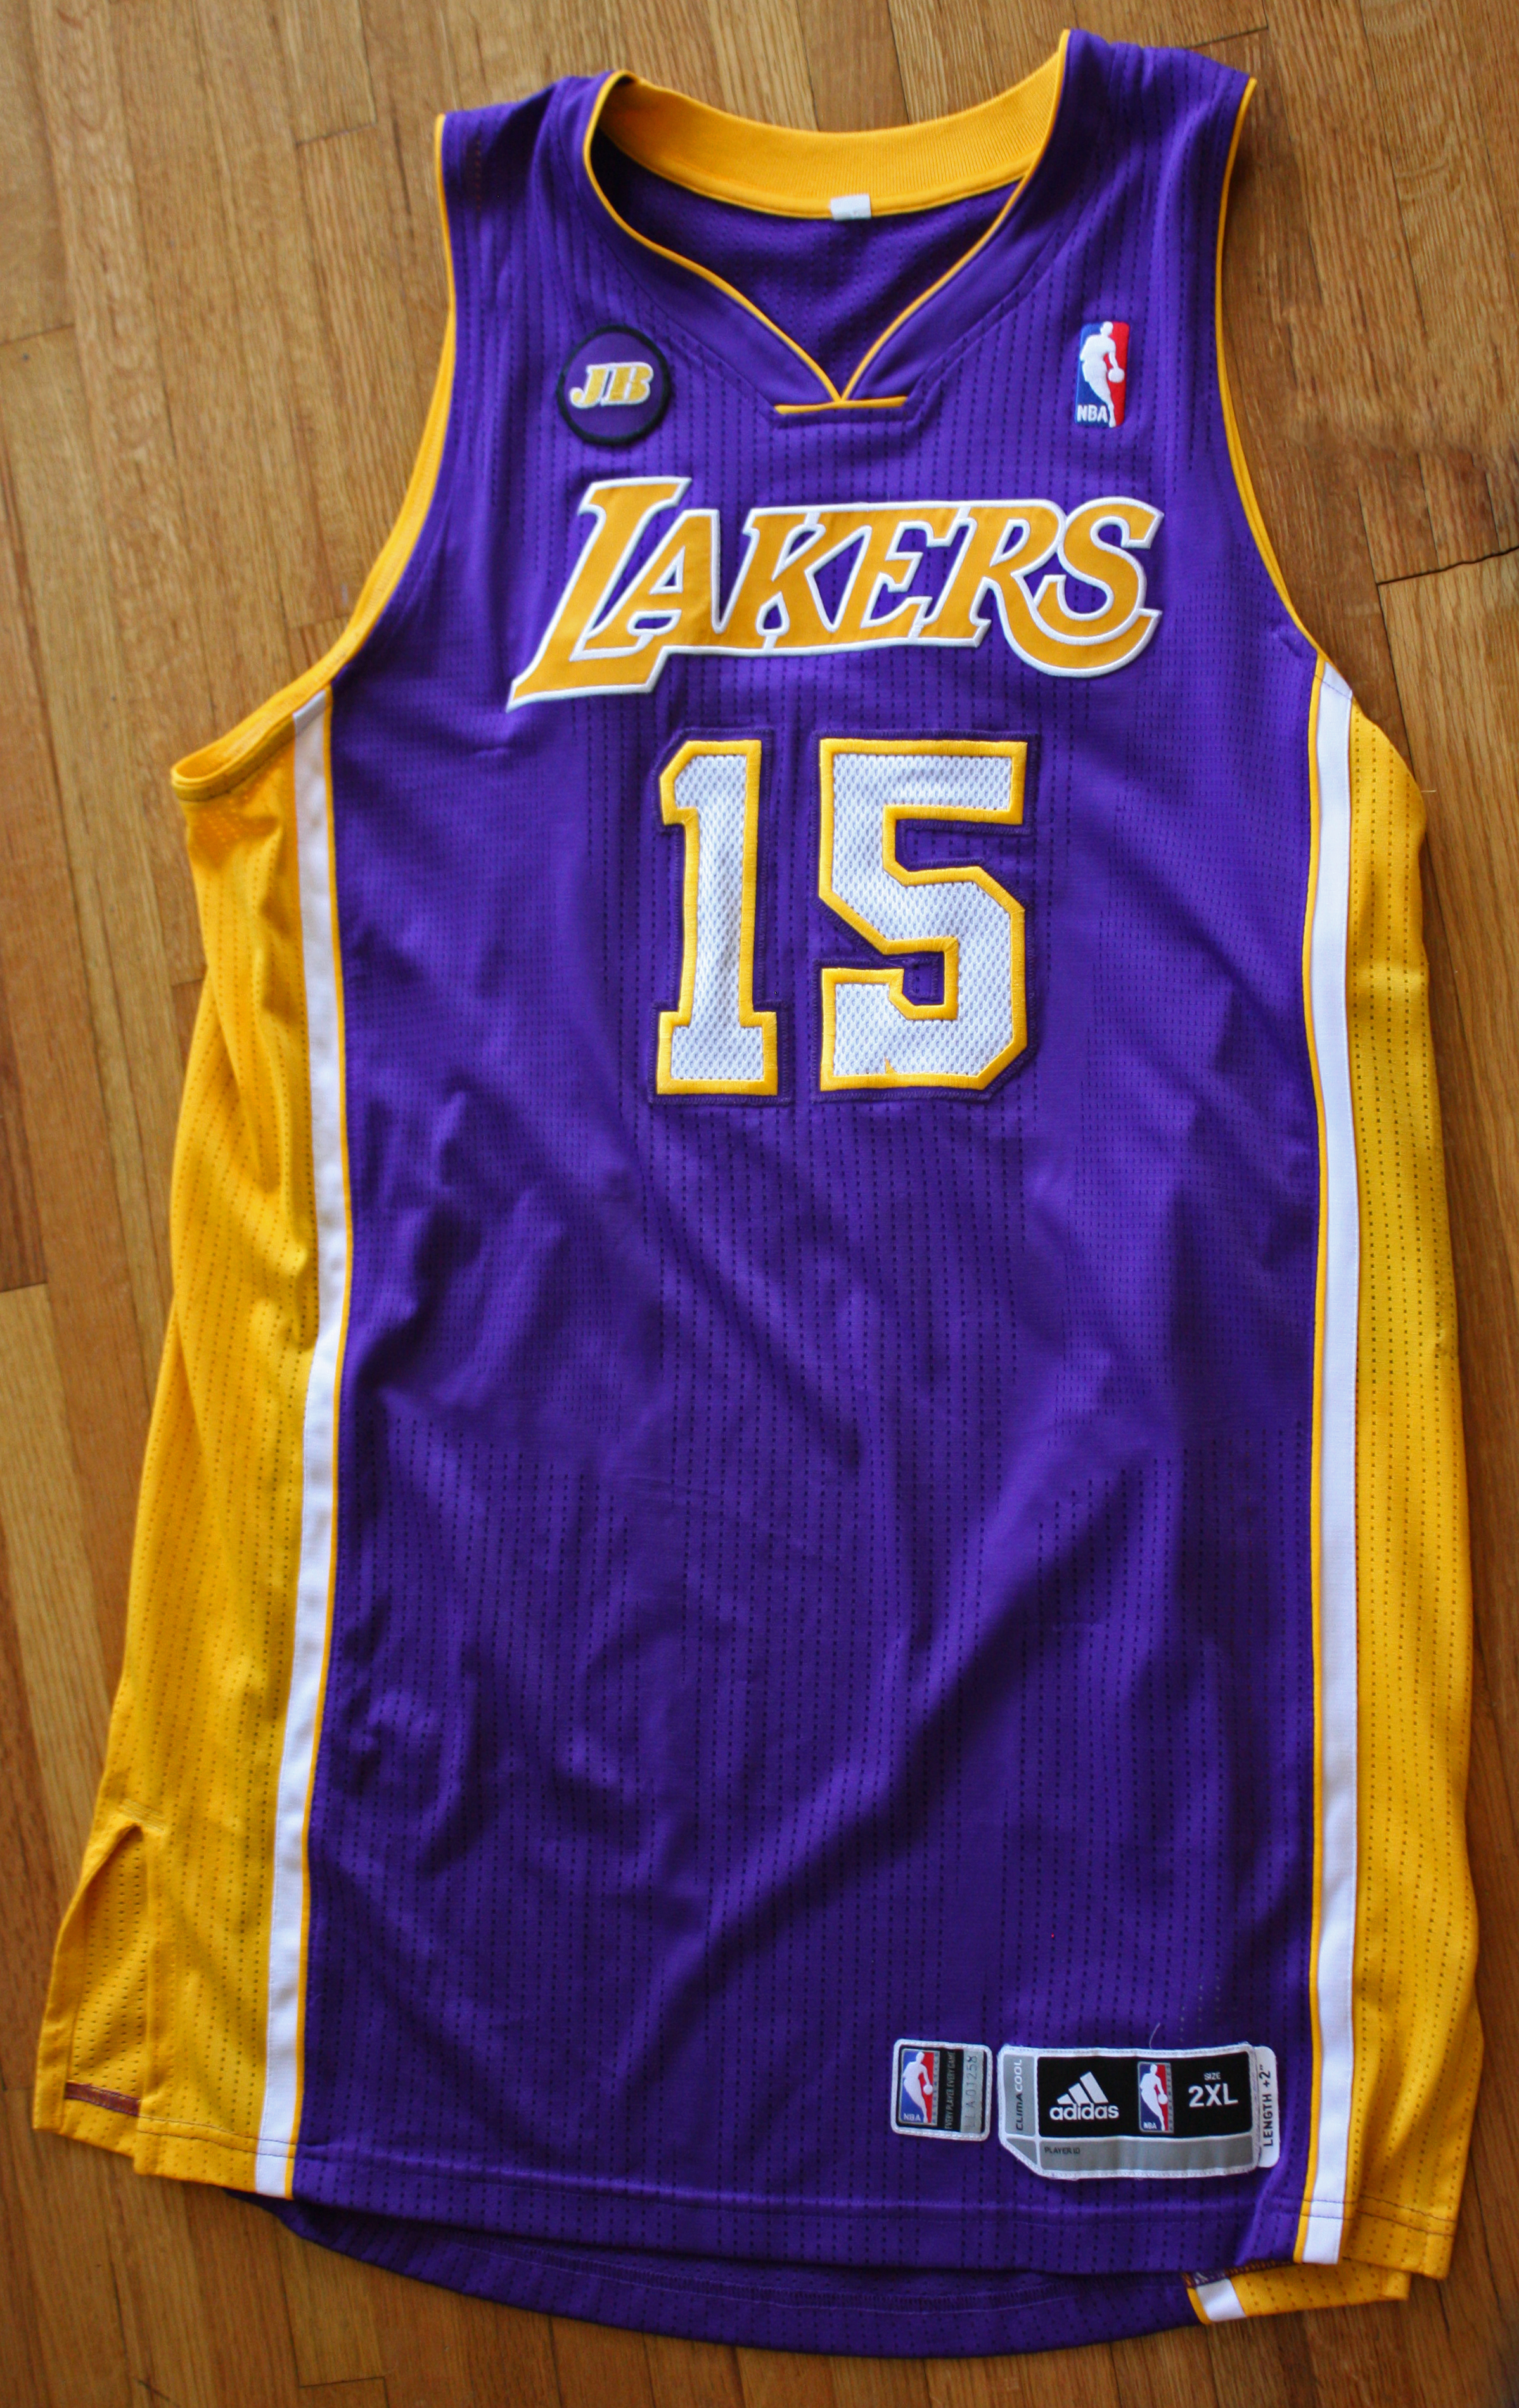 927caf9a279 2012-2013 Metta World Peace (Ron Artest) Game Worn Jersey (DC Sports ...